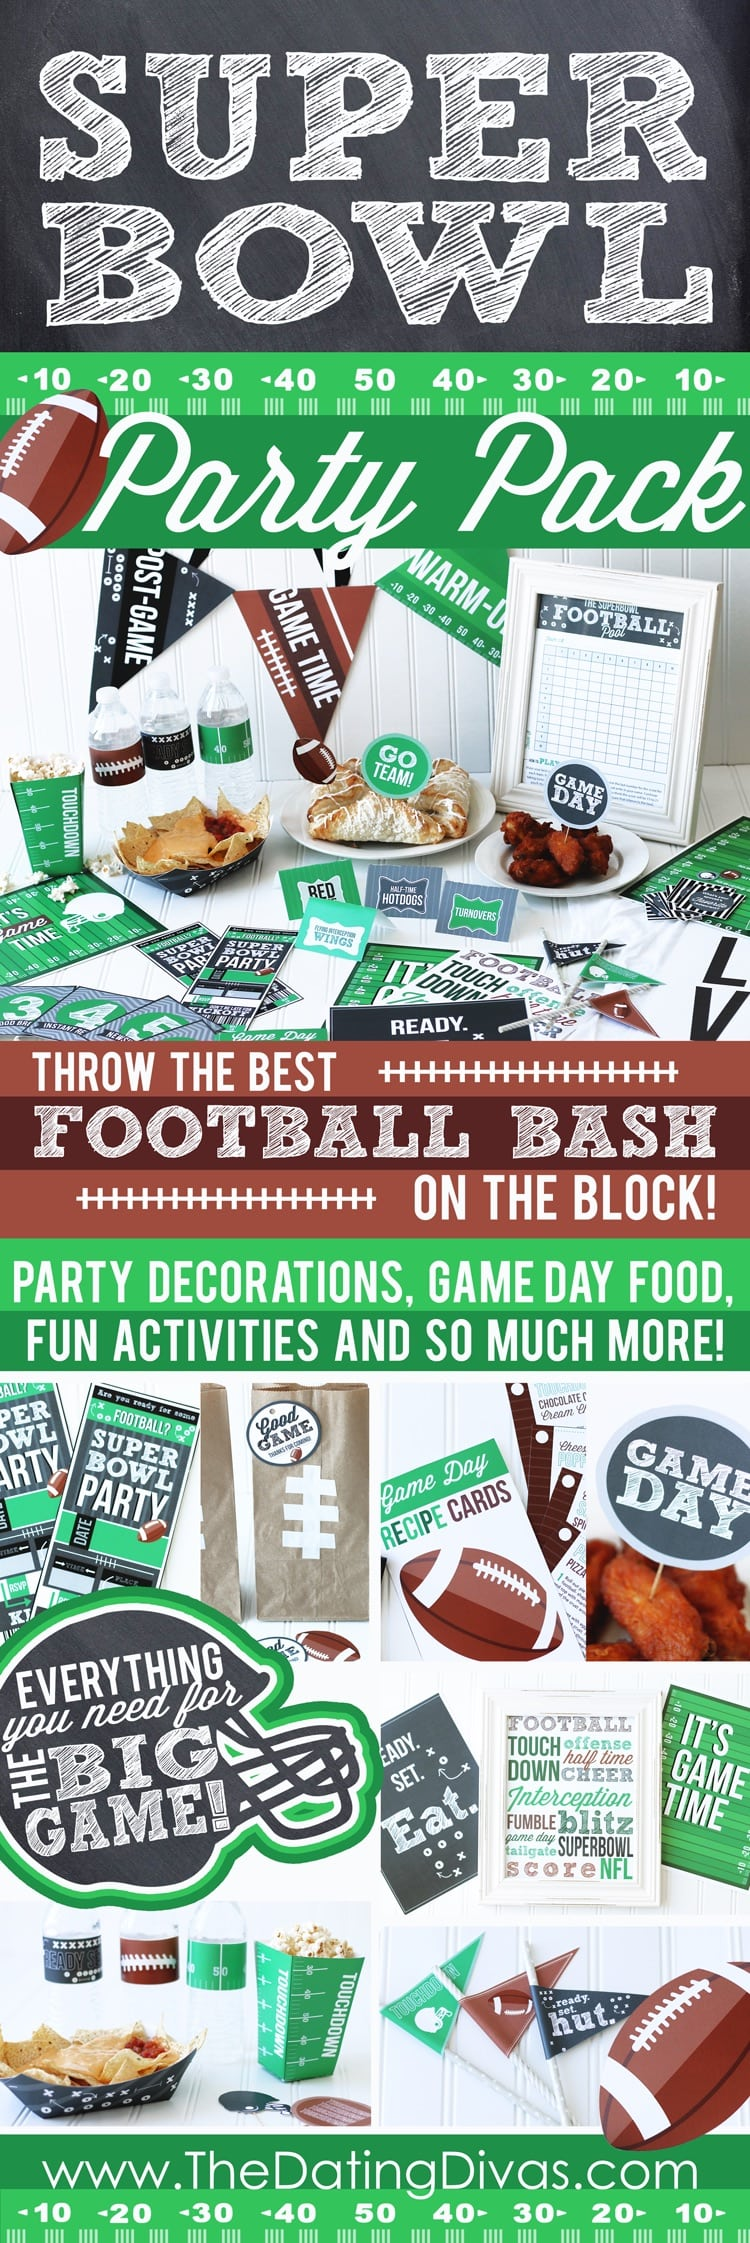 Super Bowl Party Pack